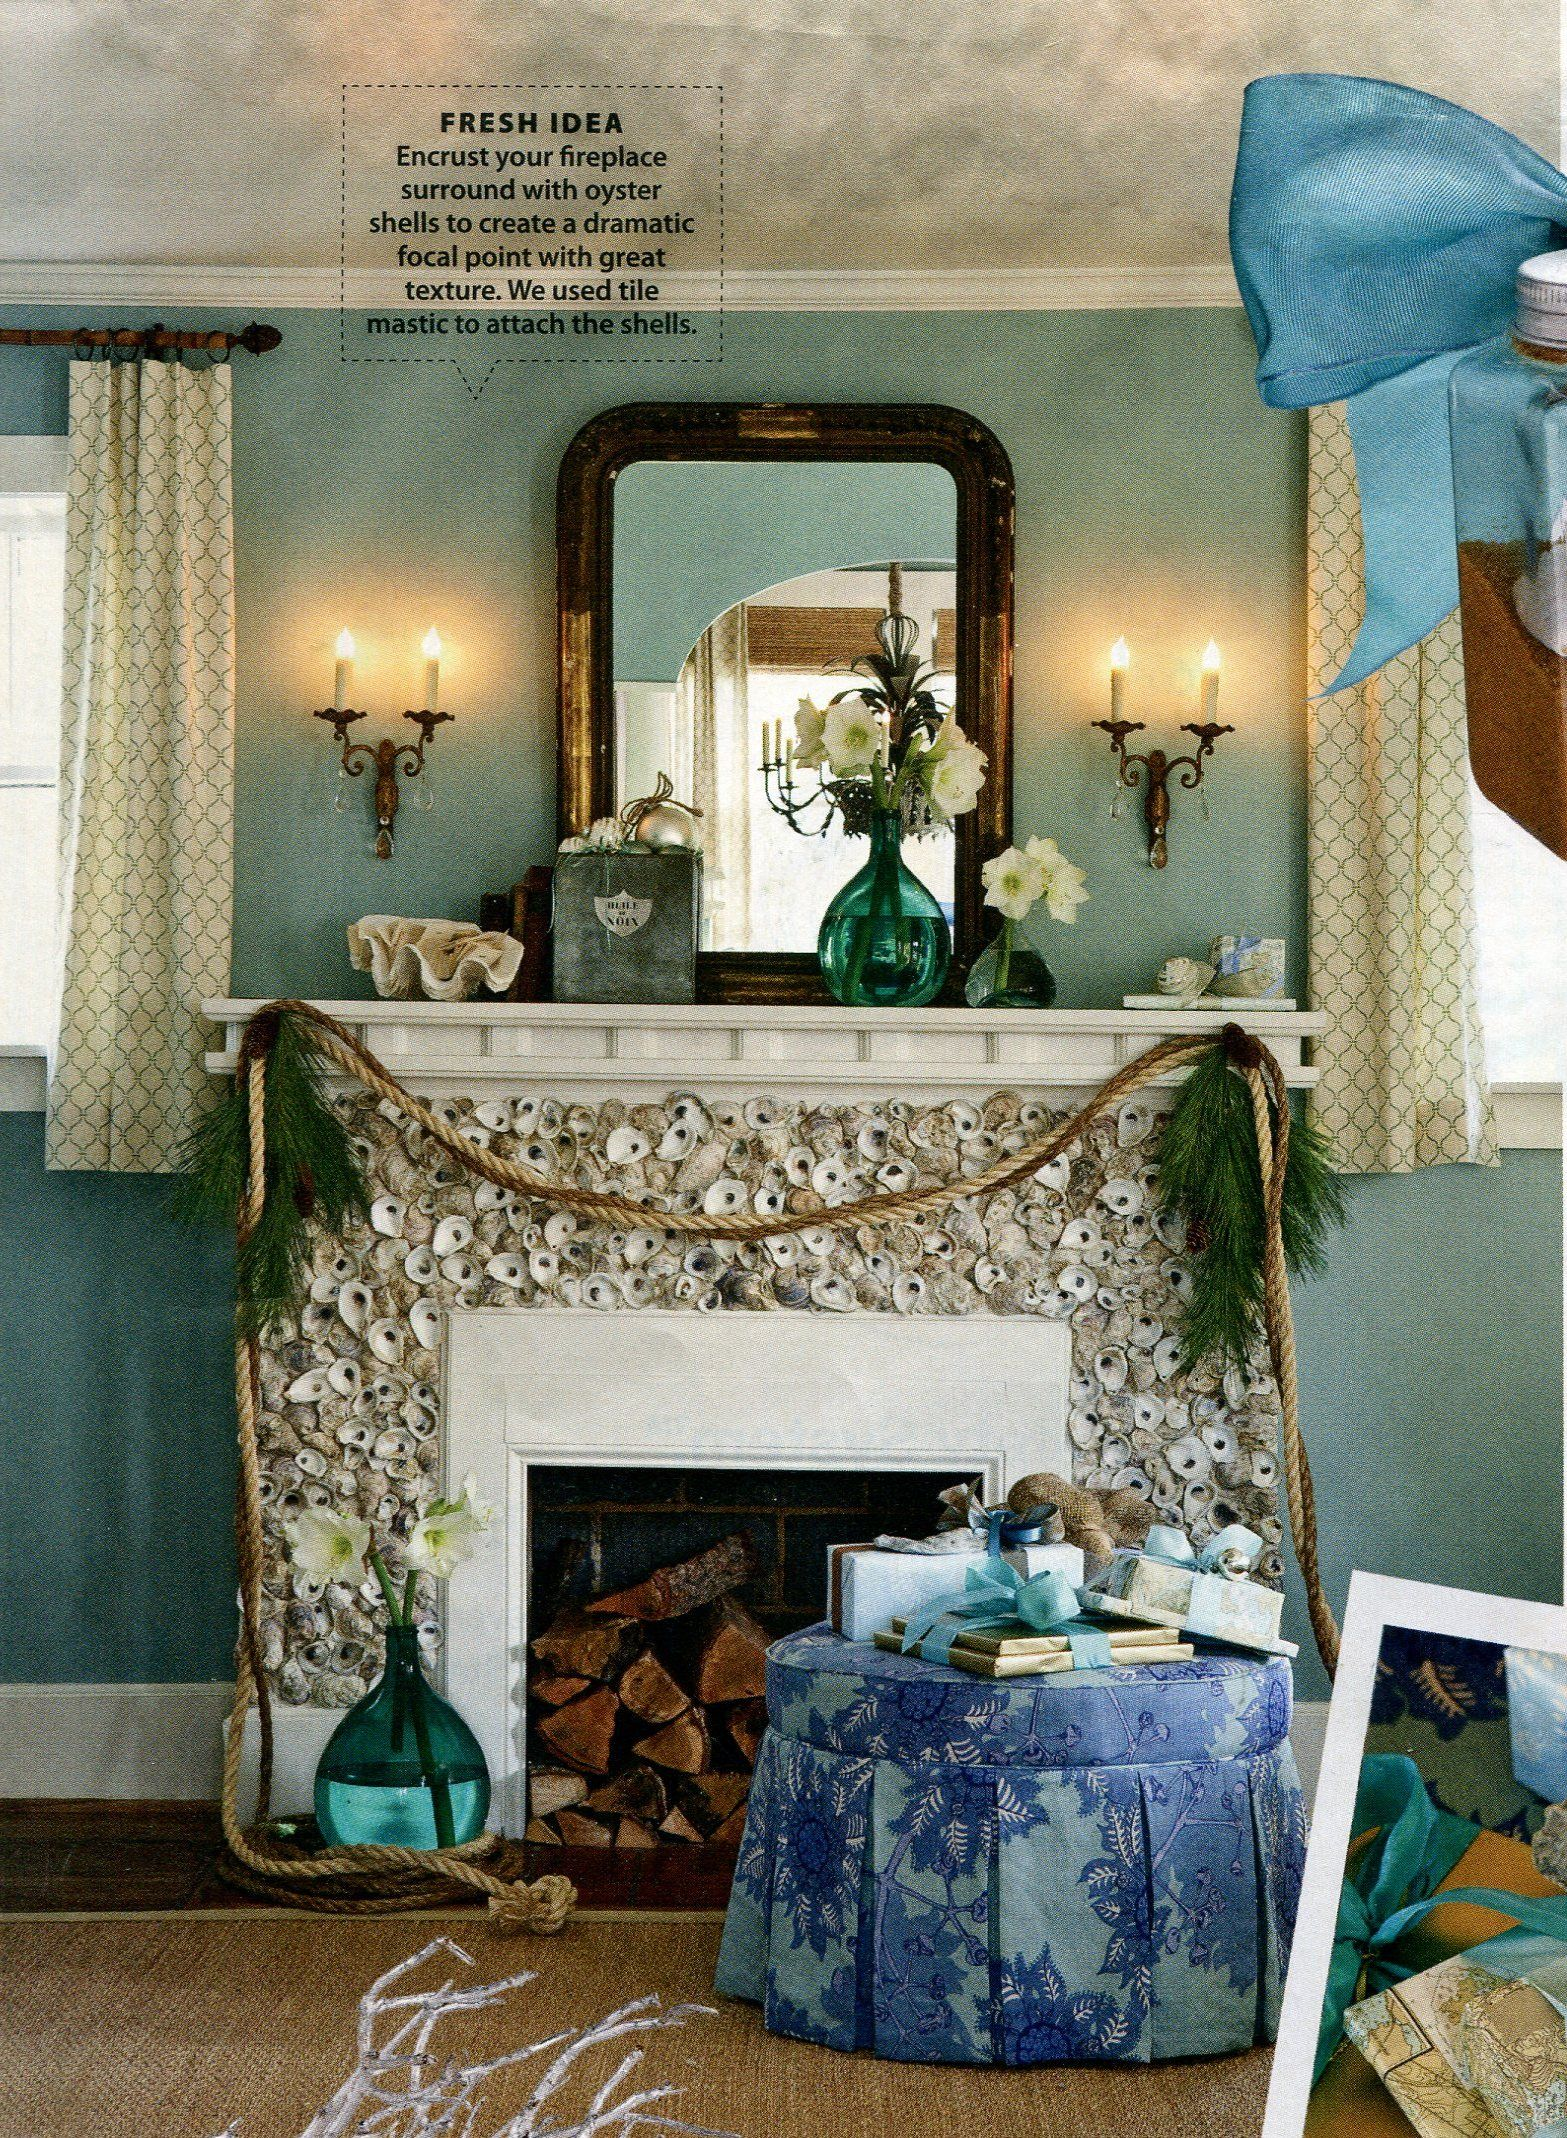 Swell Fireplace Surround With Oyster Shells Coastalliving Download Free Architecture Designs Terchretrmadebymaigaardcom